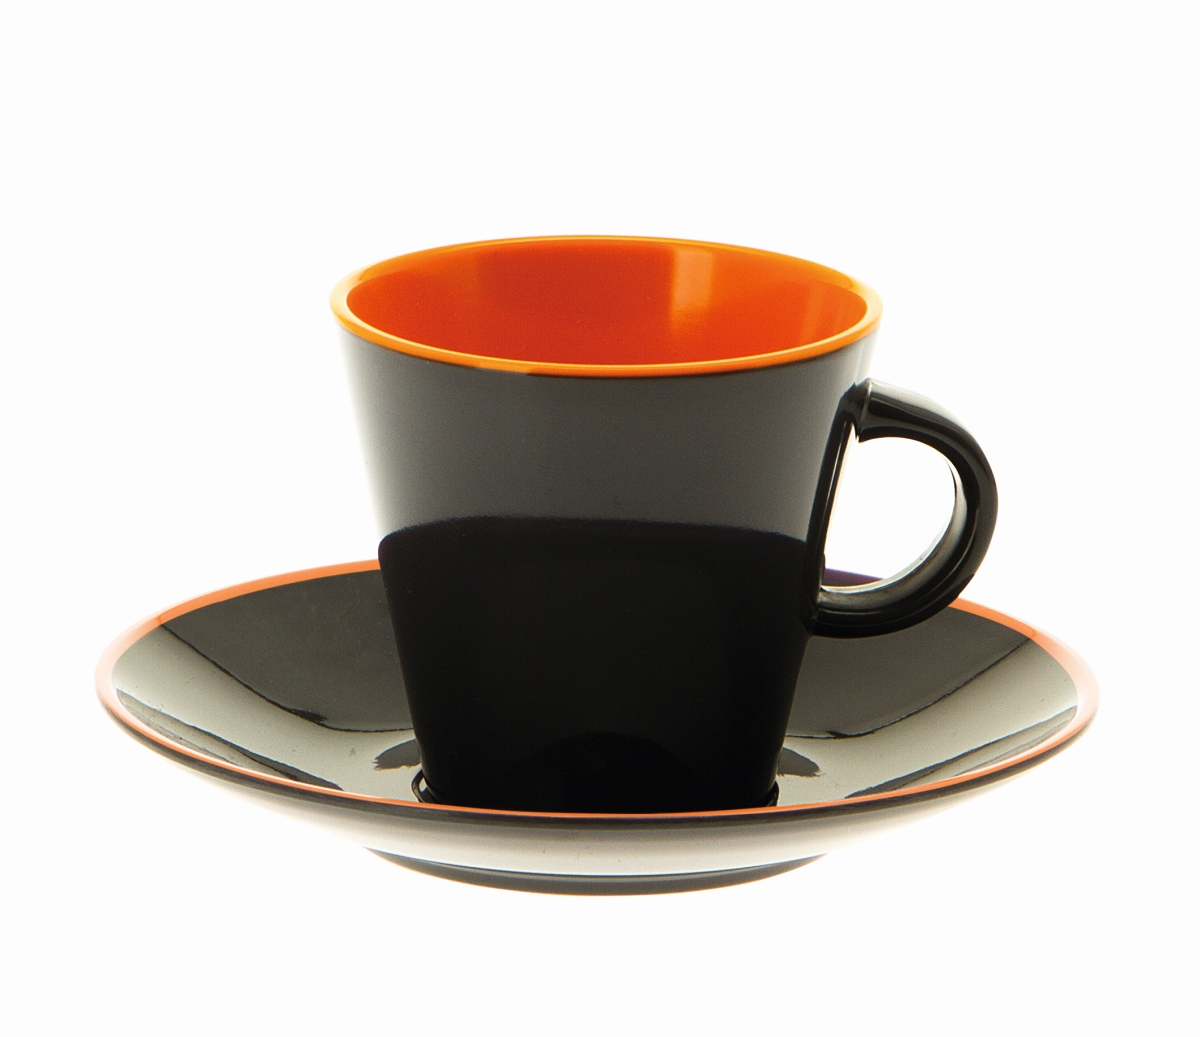 Gimex Espresso-Set grau-orange 4 tlg.